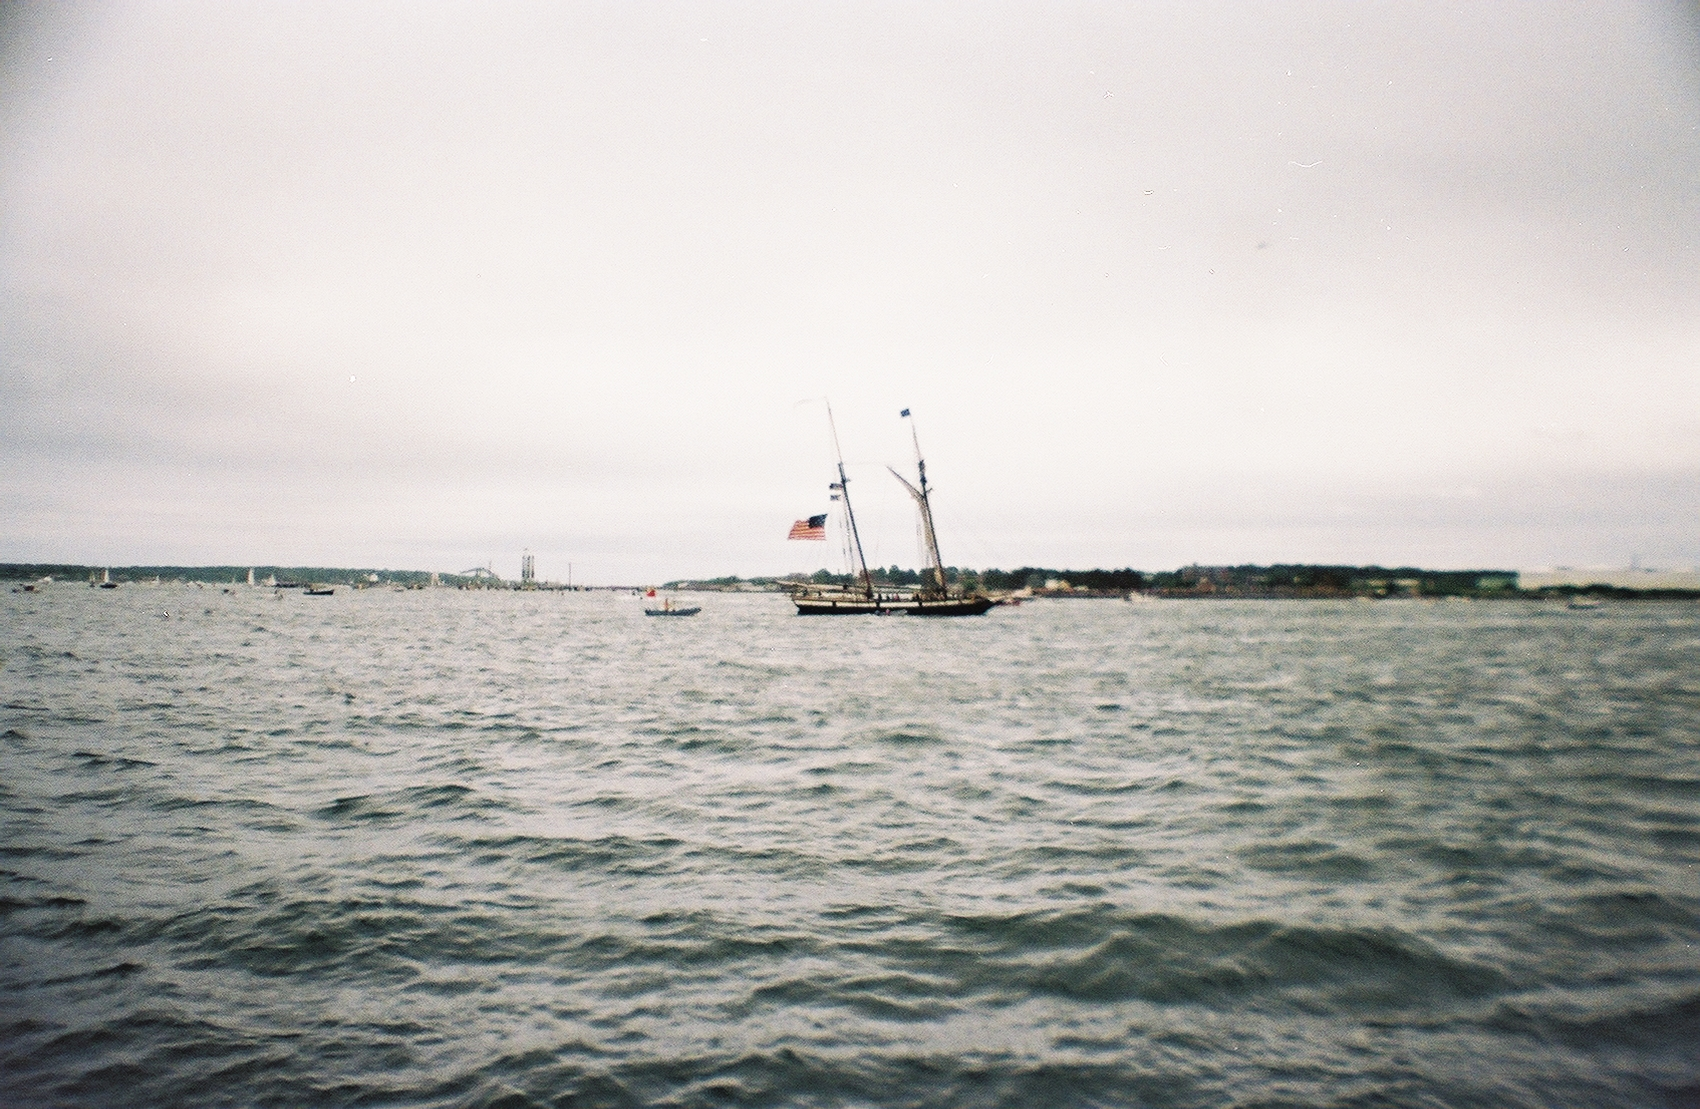 A flag can be seen from one of the tall ships